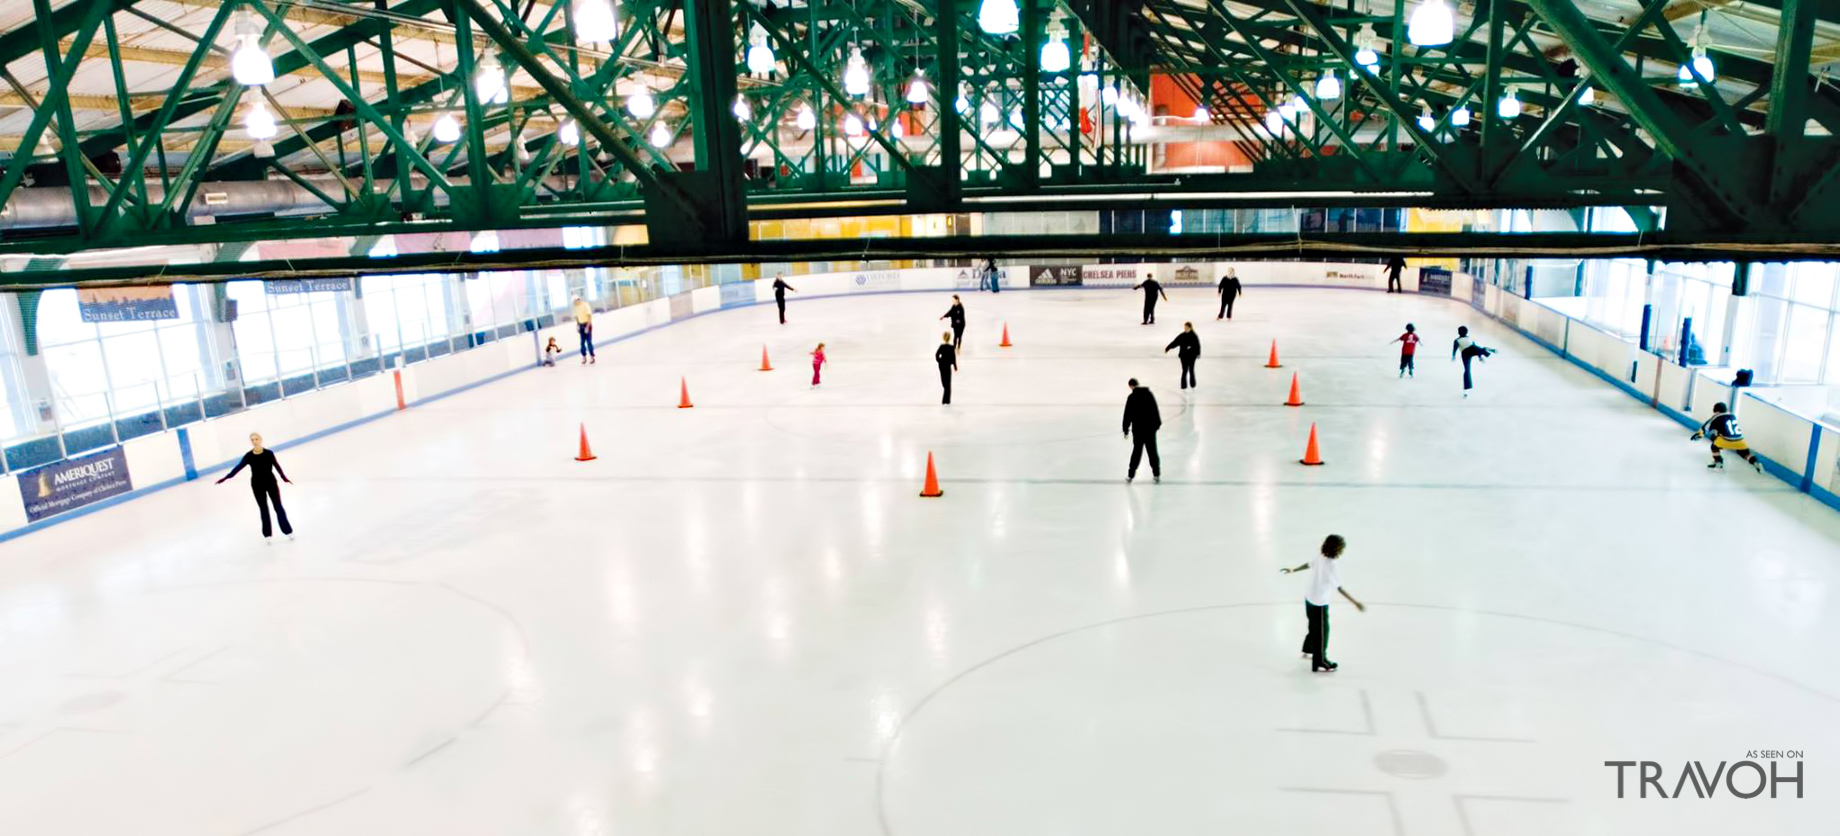 Sky Rink at Chelsea Piers - 61 Chelsea Piers, New York, NY, USA